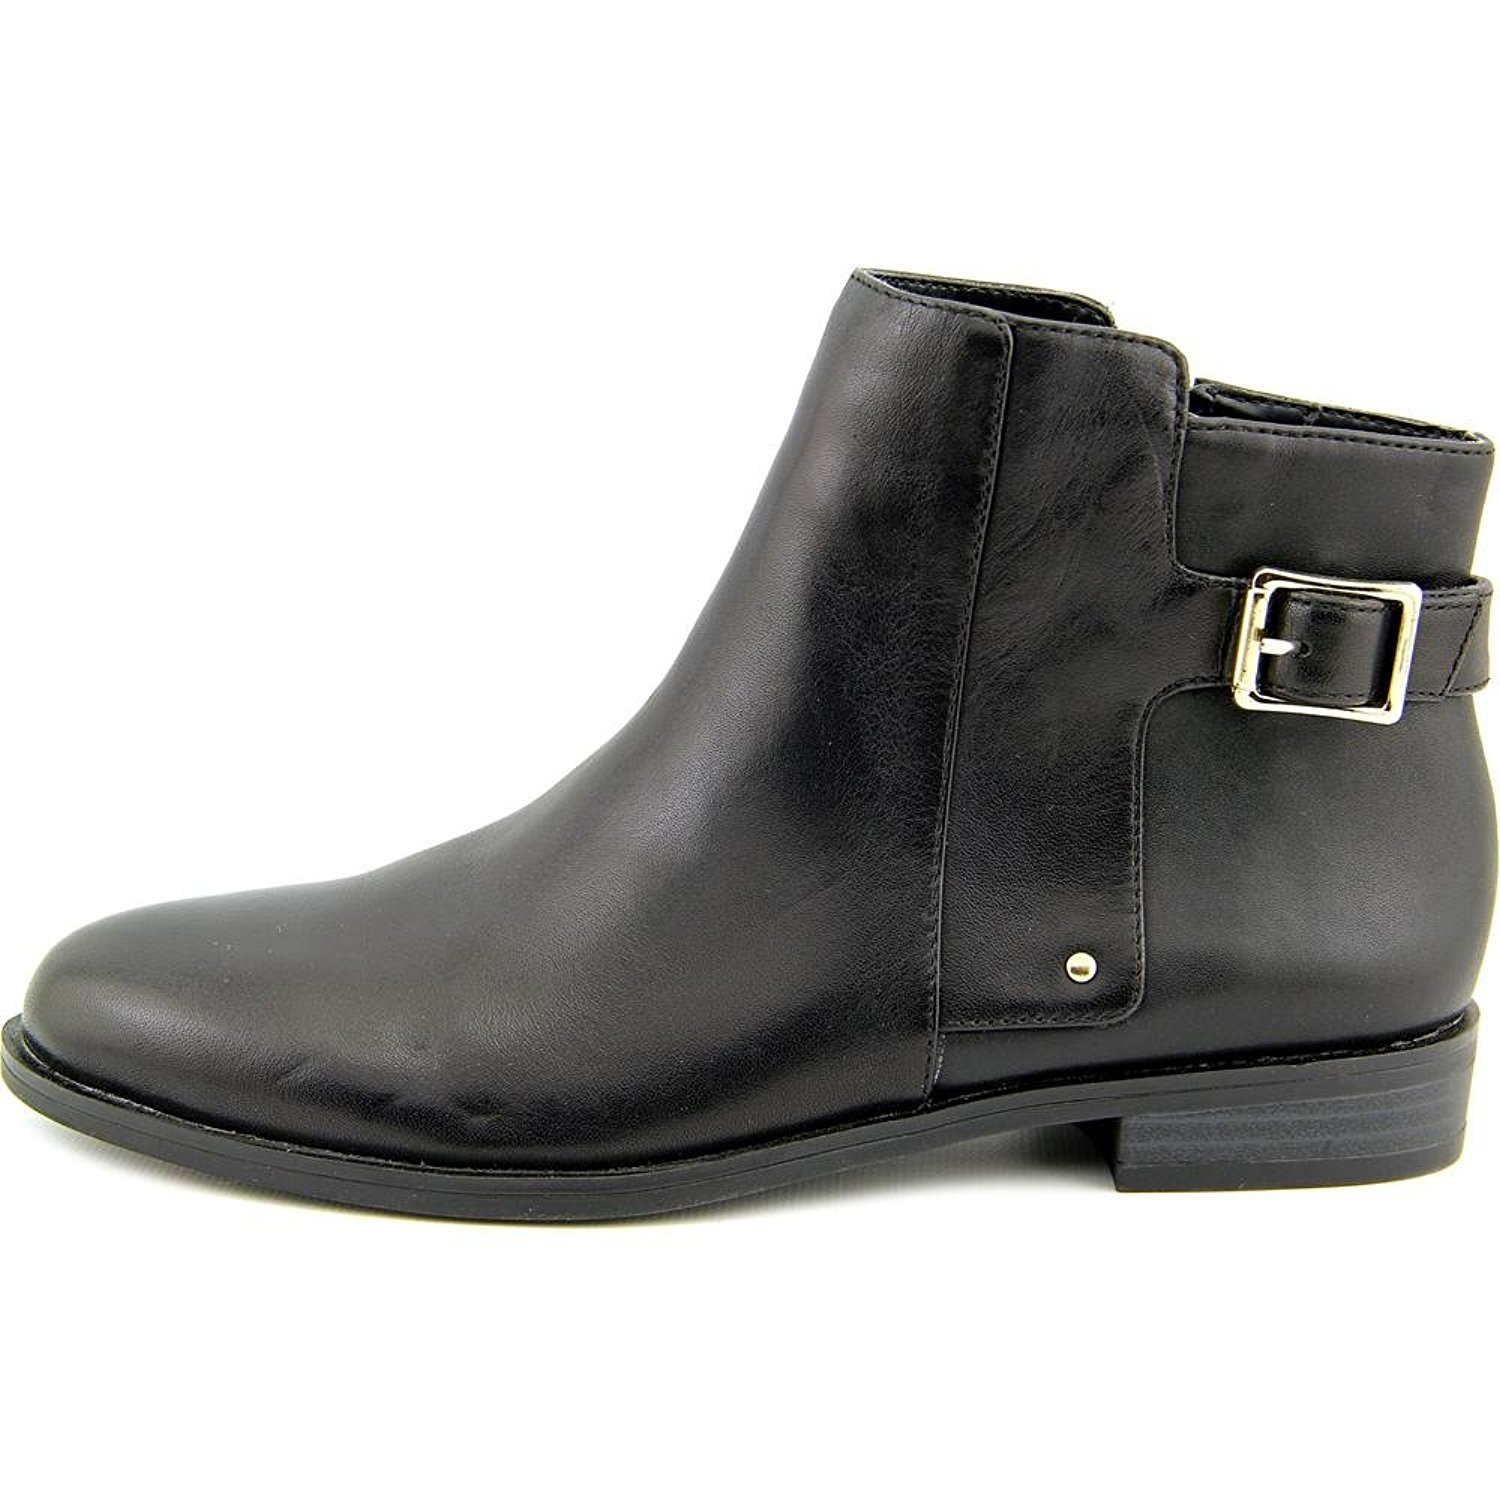 Womens Acke Leather Closed Toe Ankle Fashion Boots